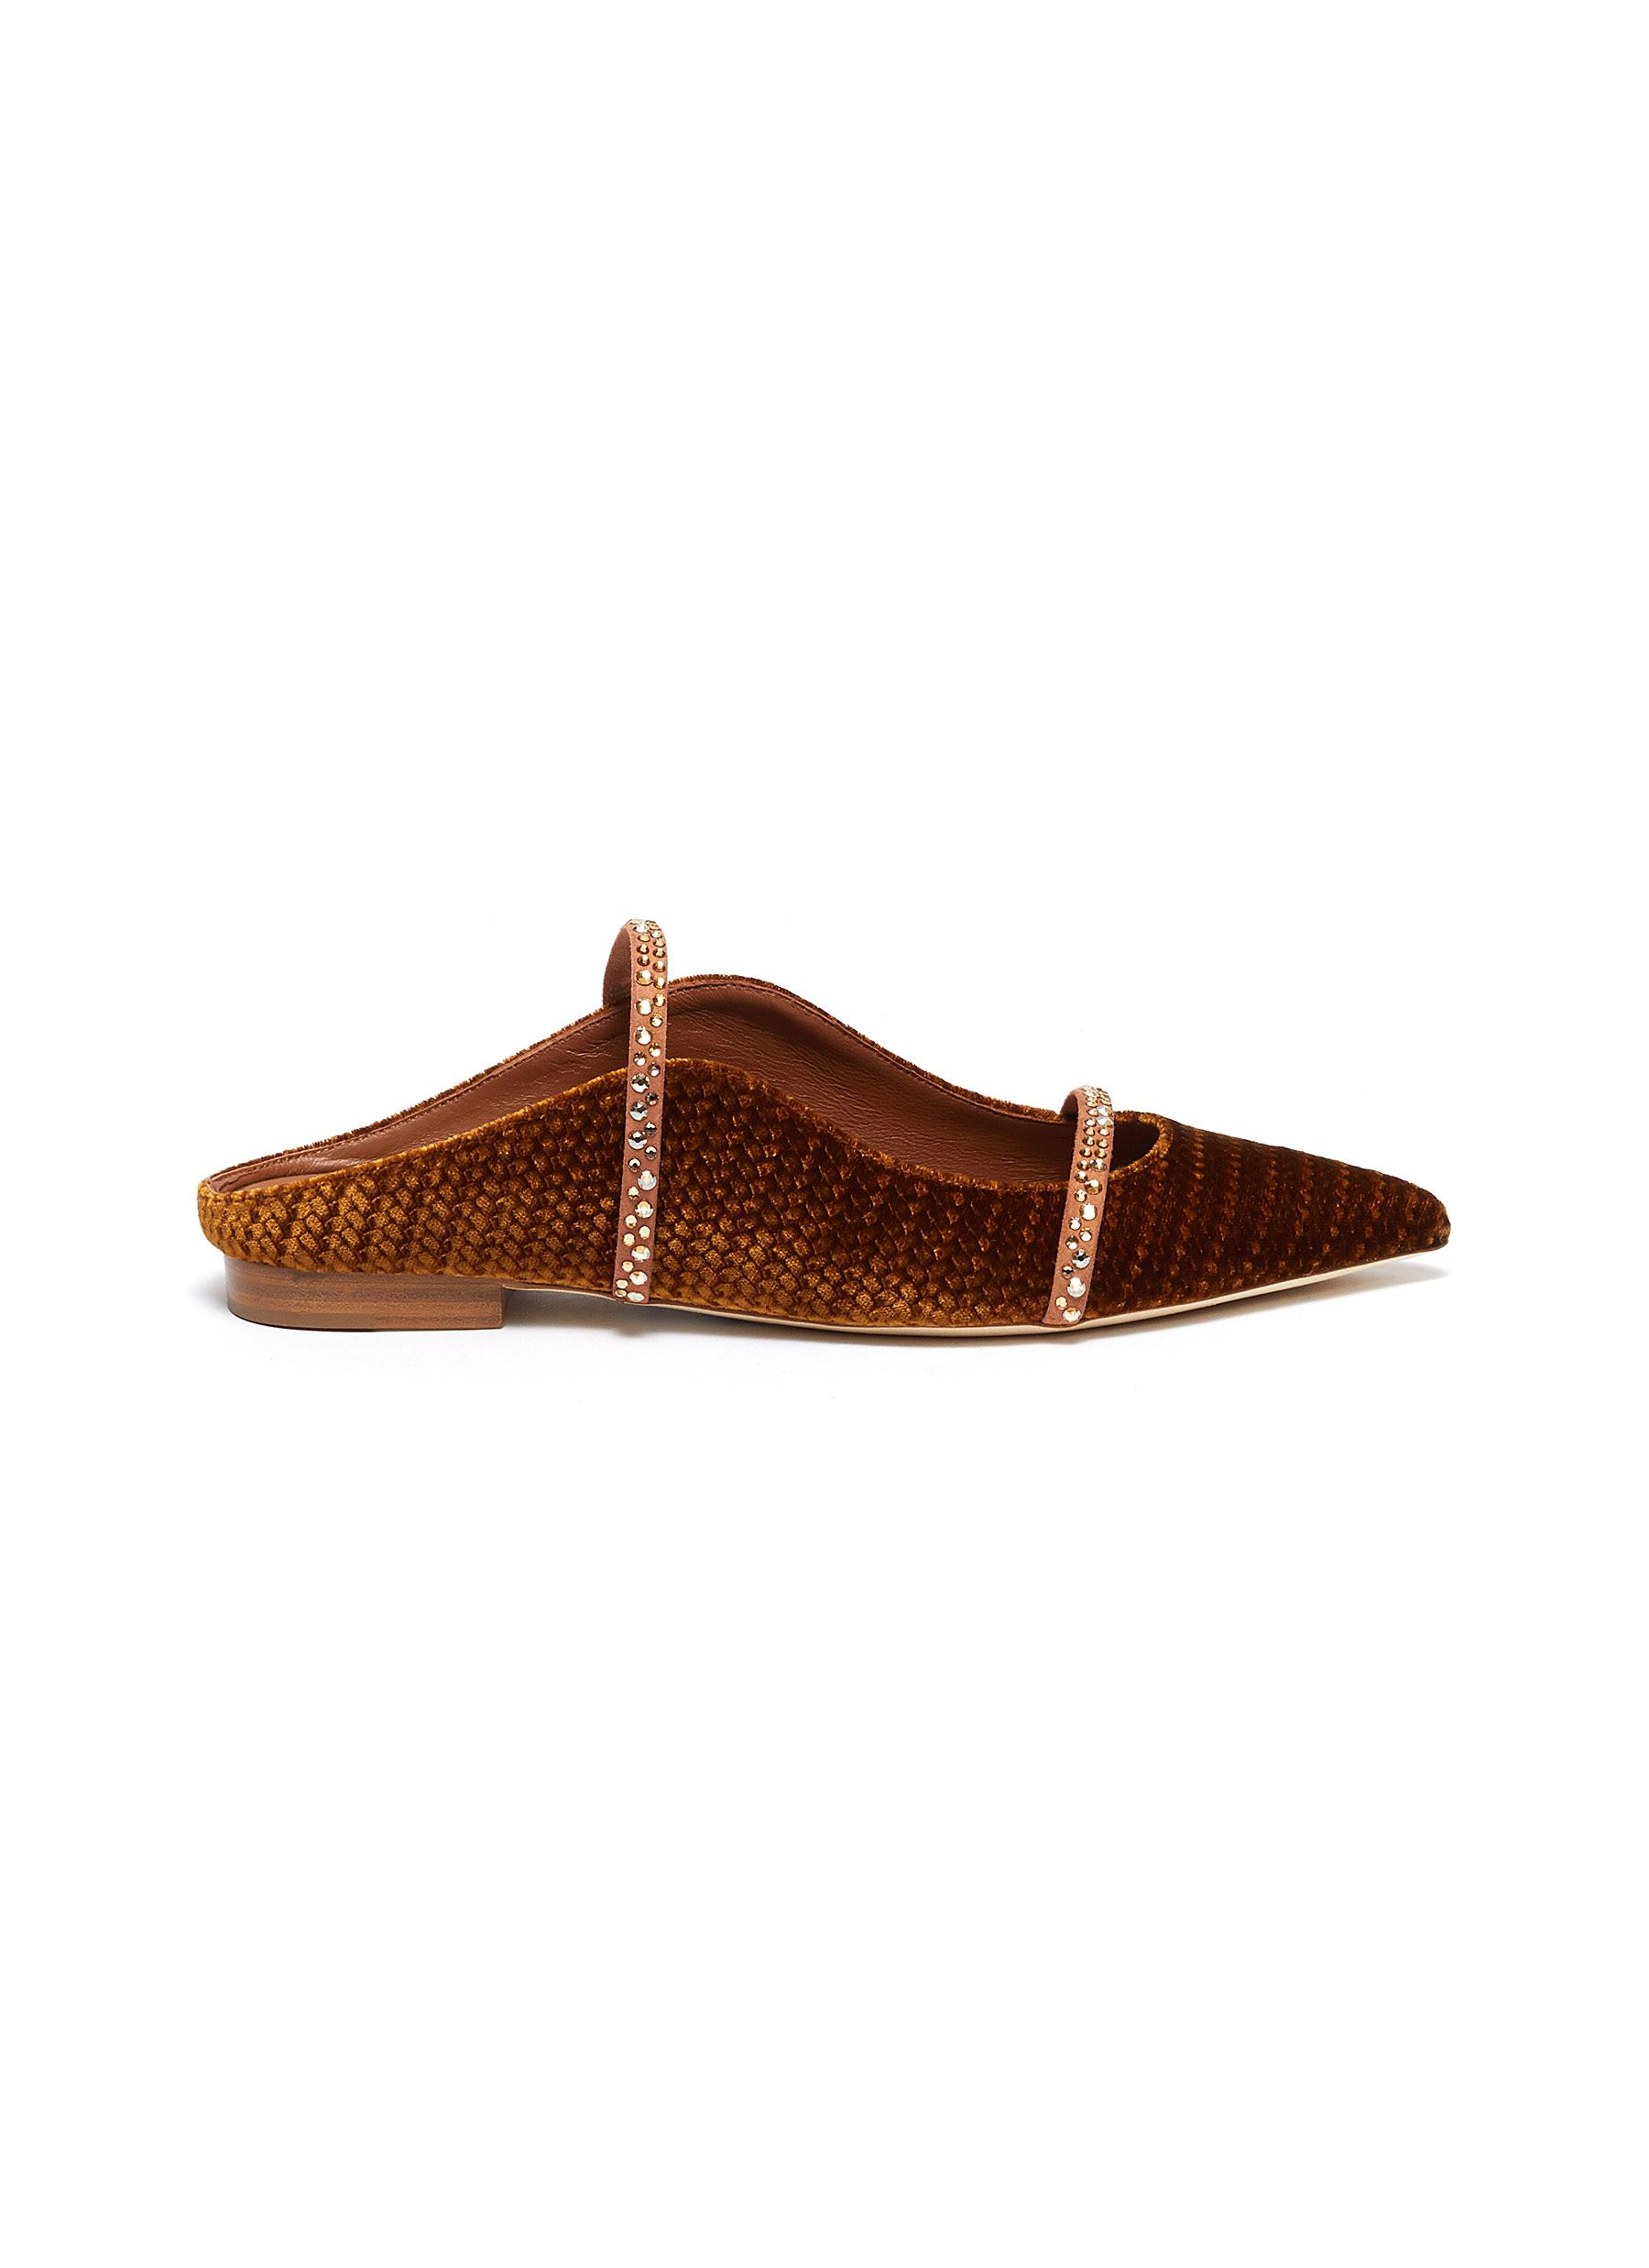 Maureen strass strappy leather flats by Malone Souliers